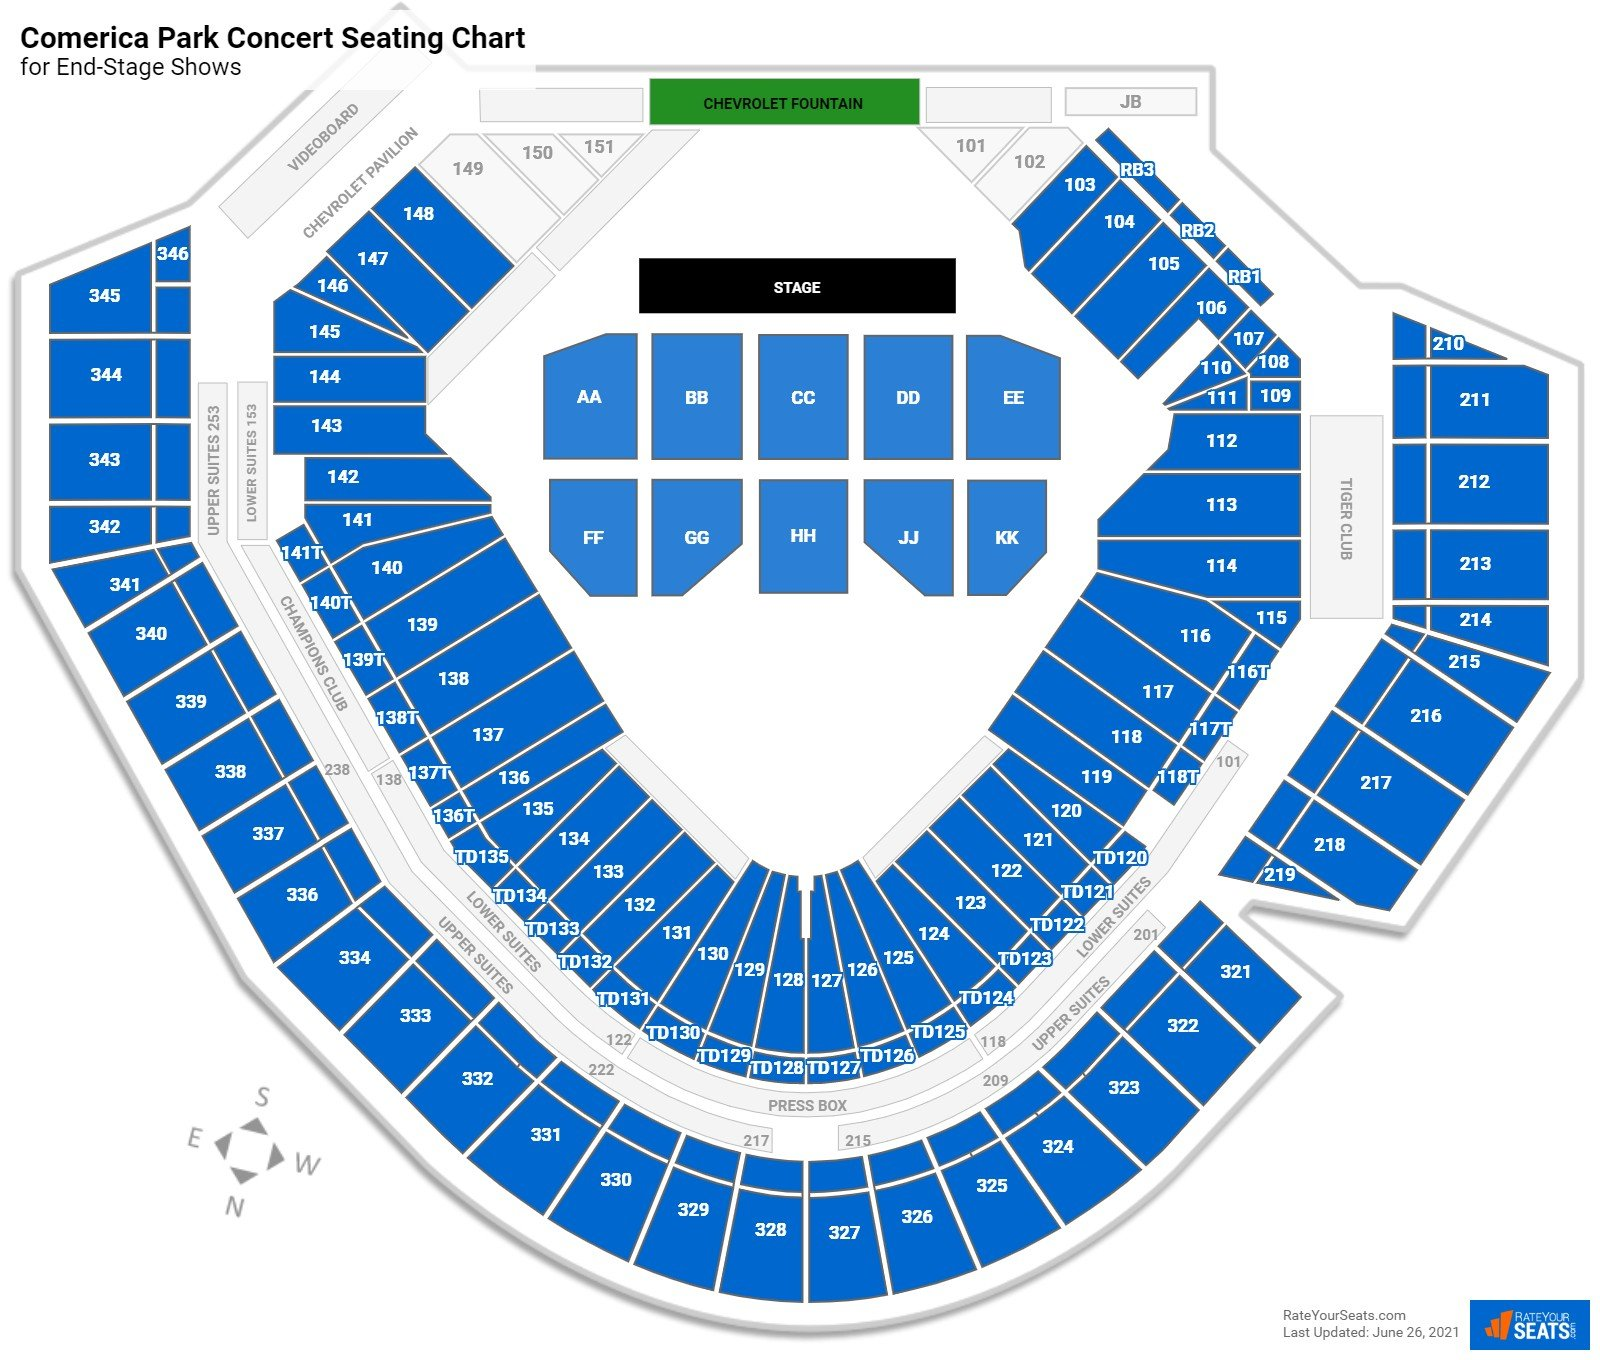 Comerica Park Seating Chart for Concerts